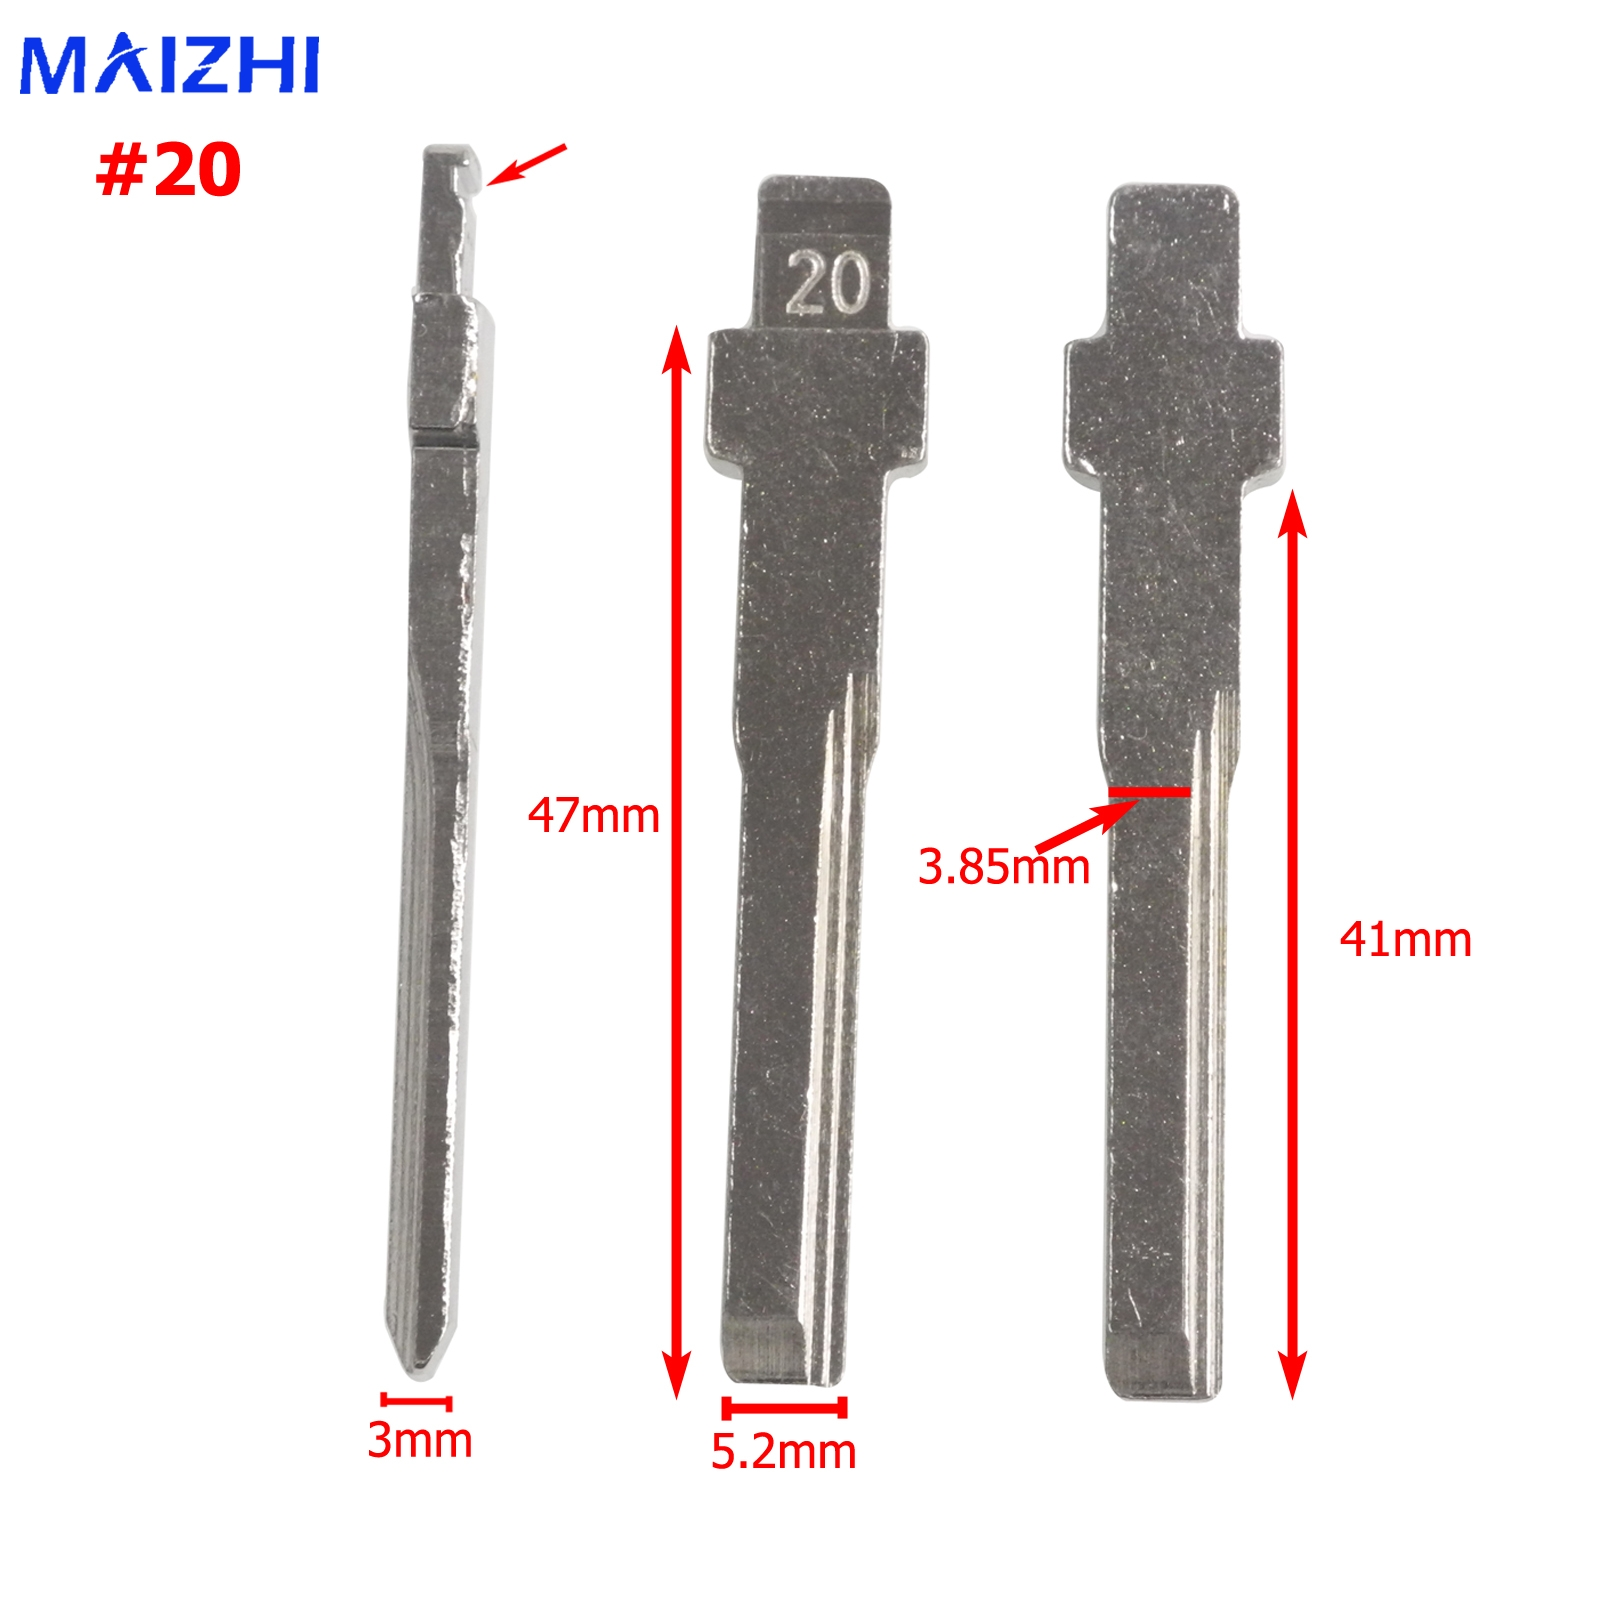 maizhi Remote HU83 Blank Key Replacement Uncut Key Blade for Mercedes-Benz C E Card Series Car-styling